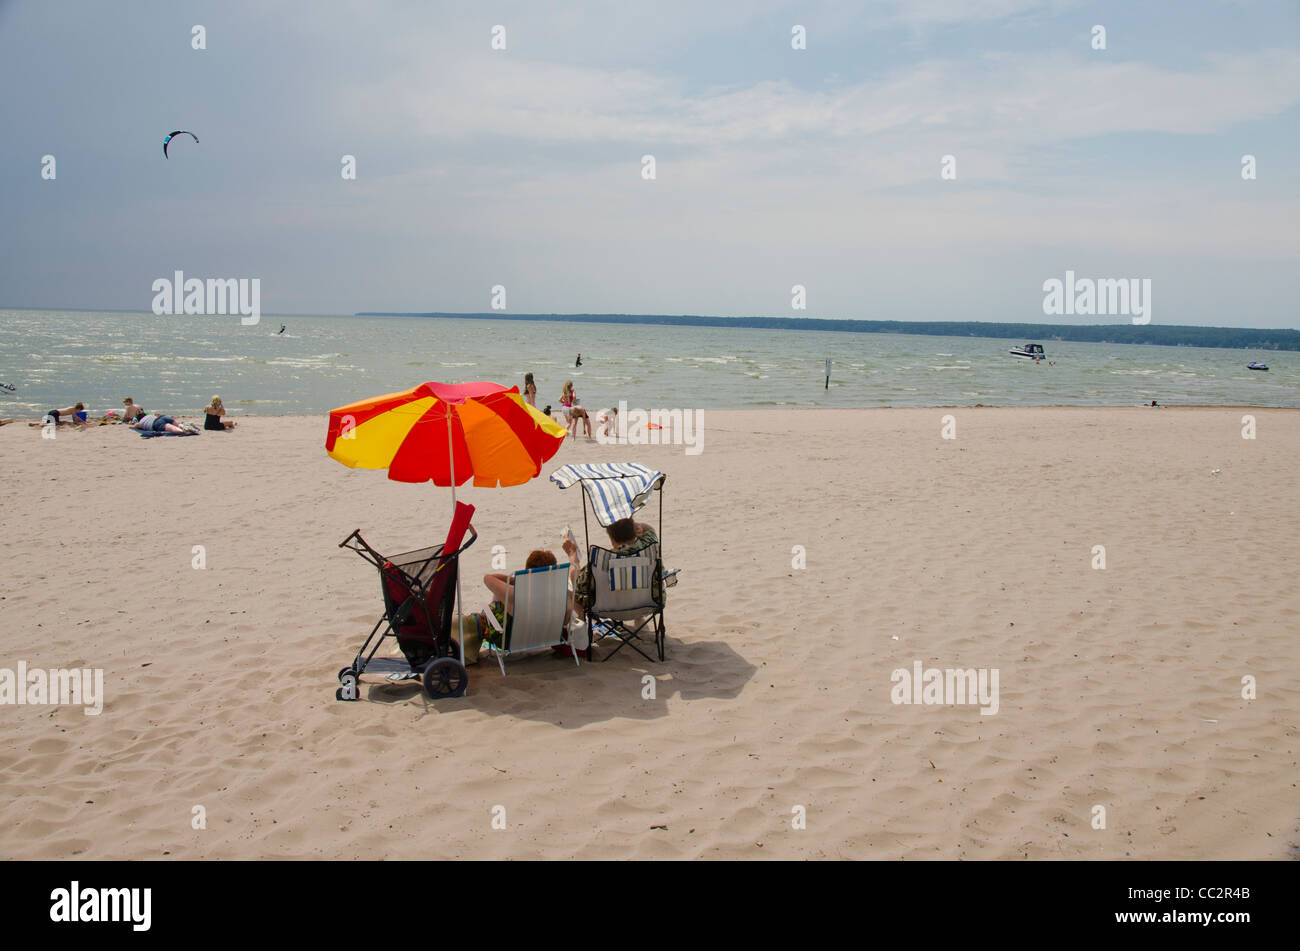 New York state, Sylvan Beach. - Stock Image